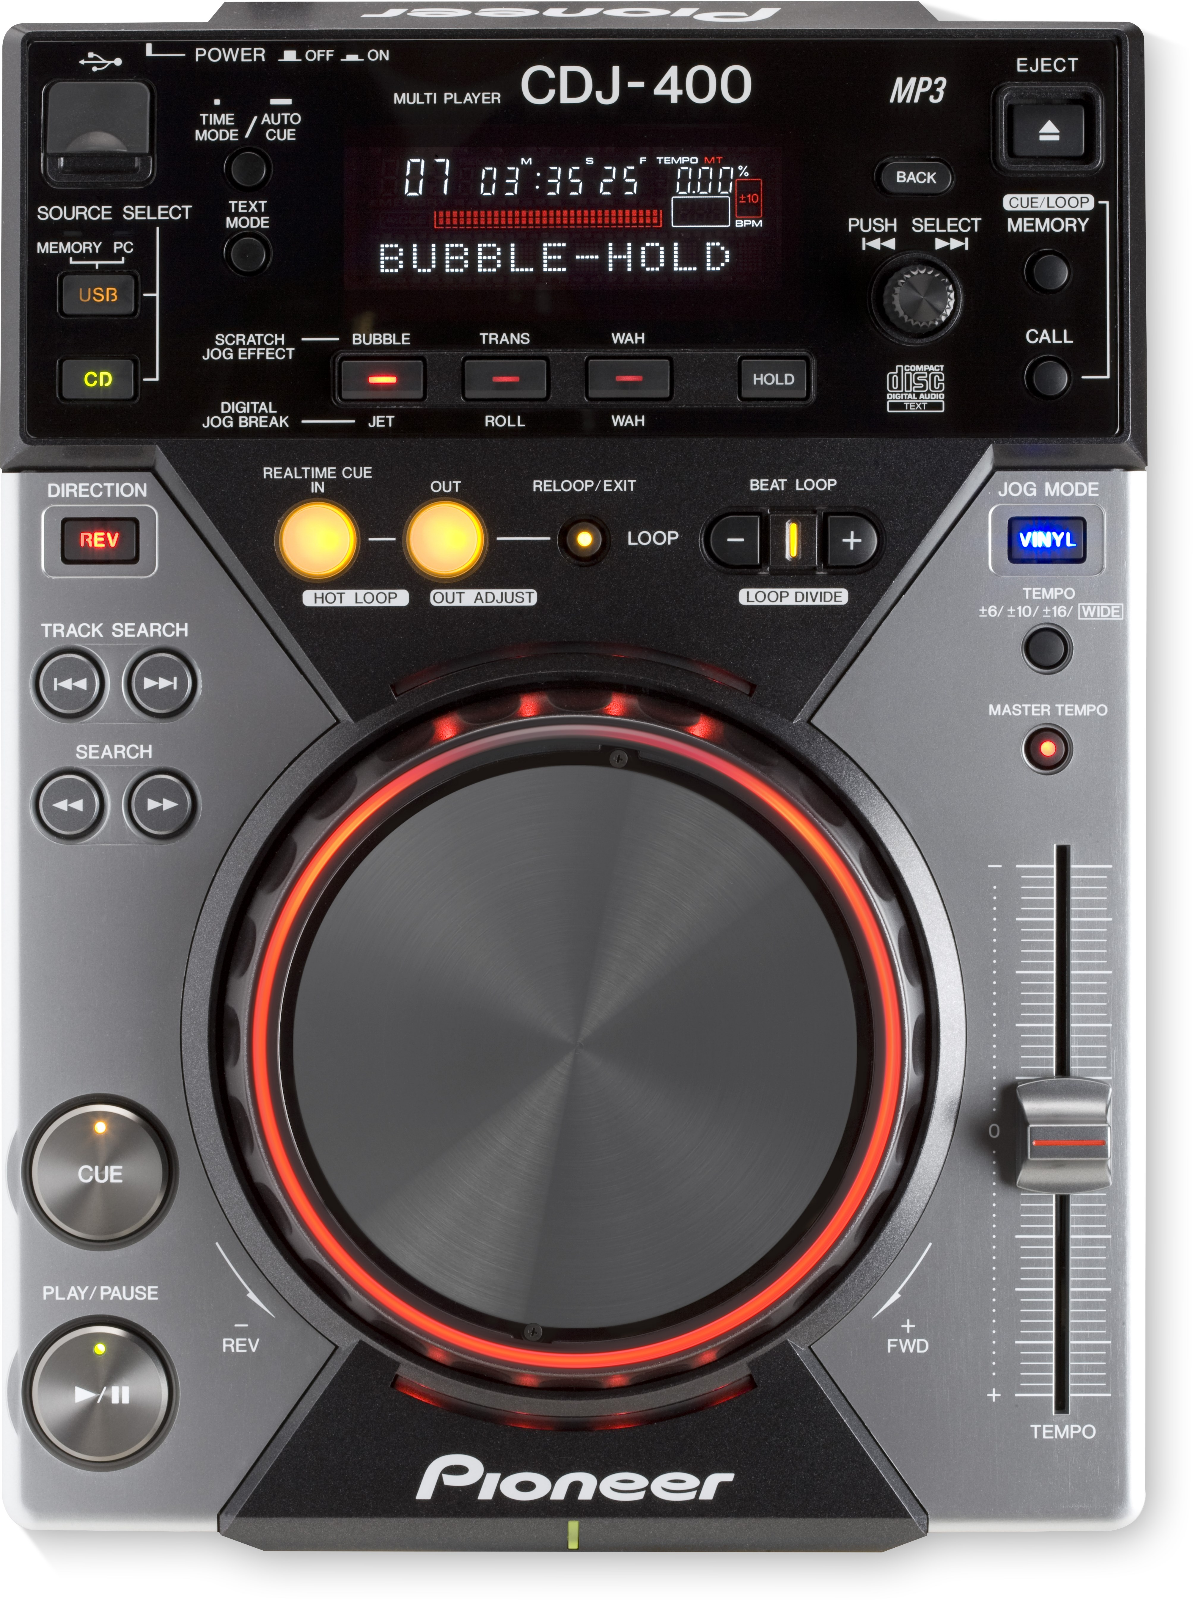 Pioneer CDJ-400 digital CD/MP3/USB scratch media player deck